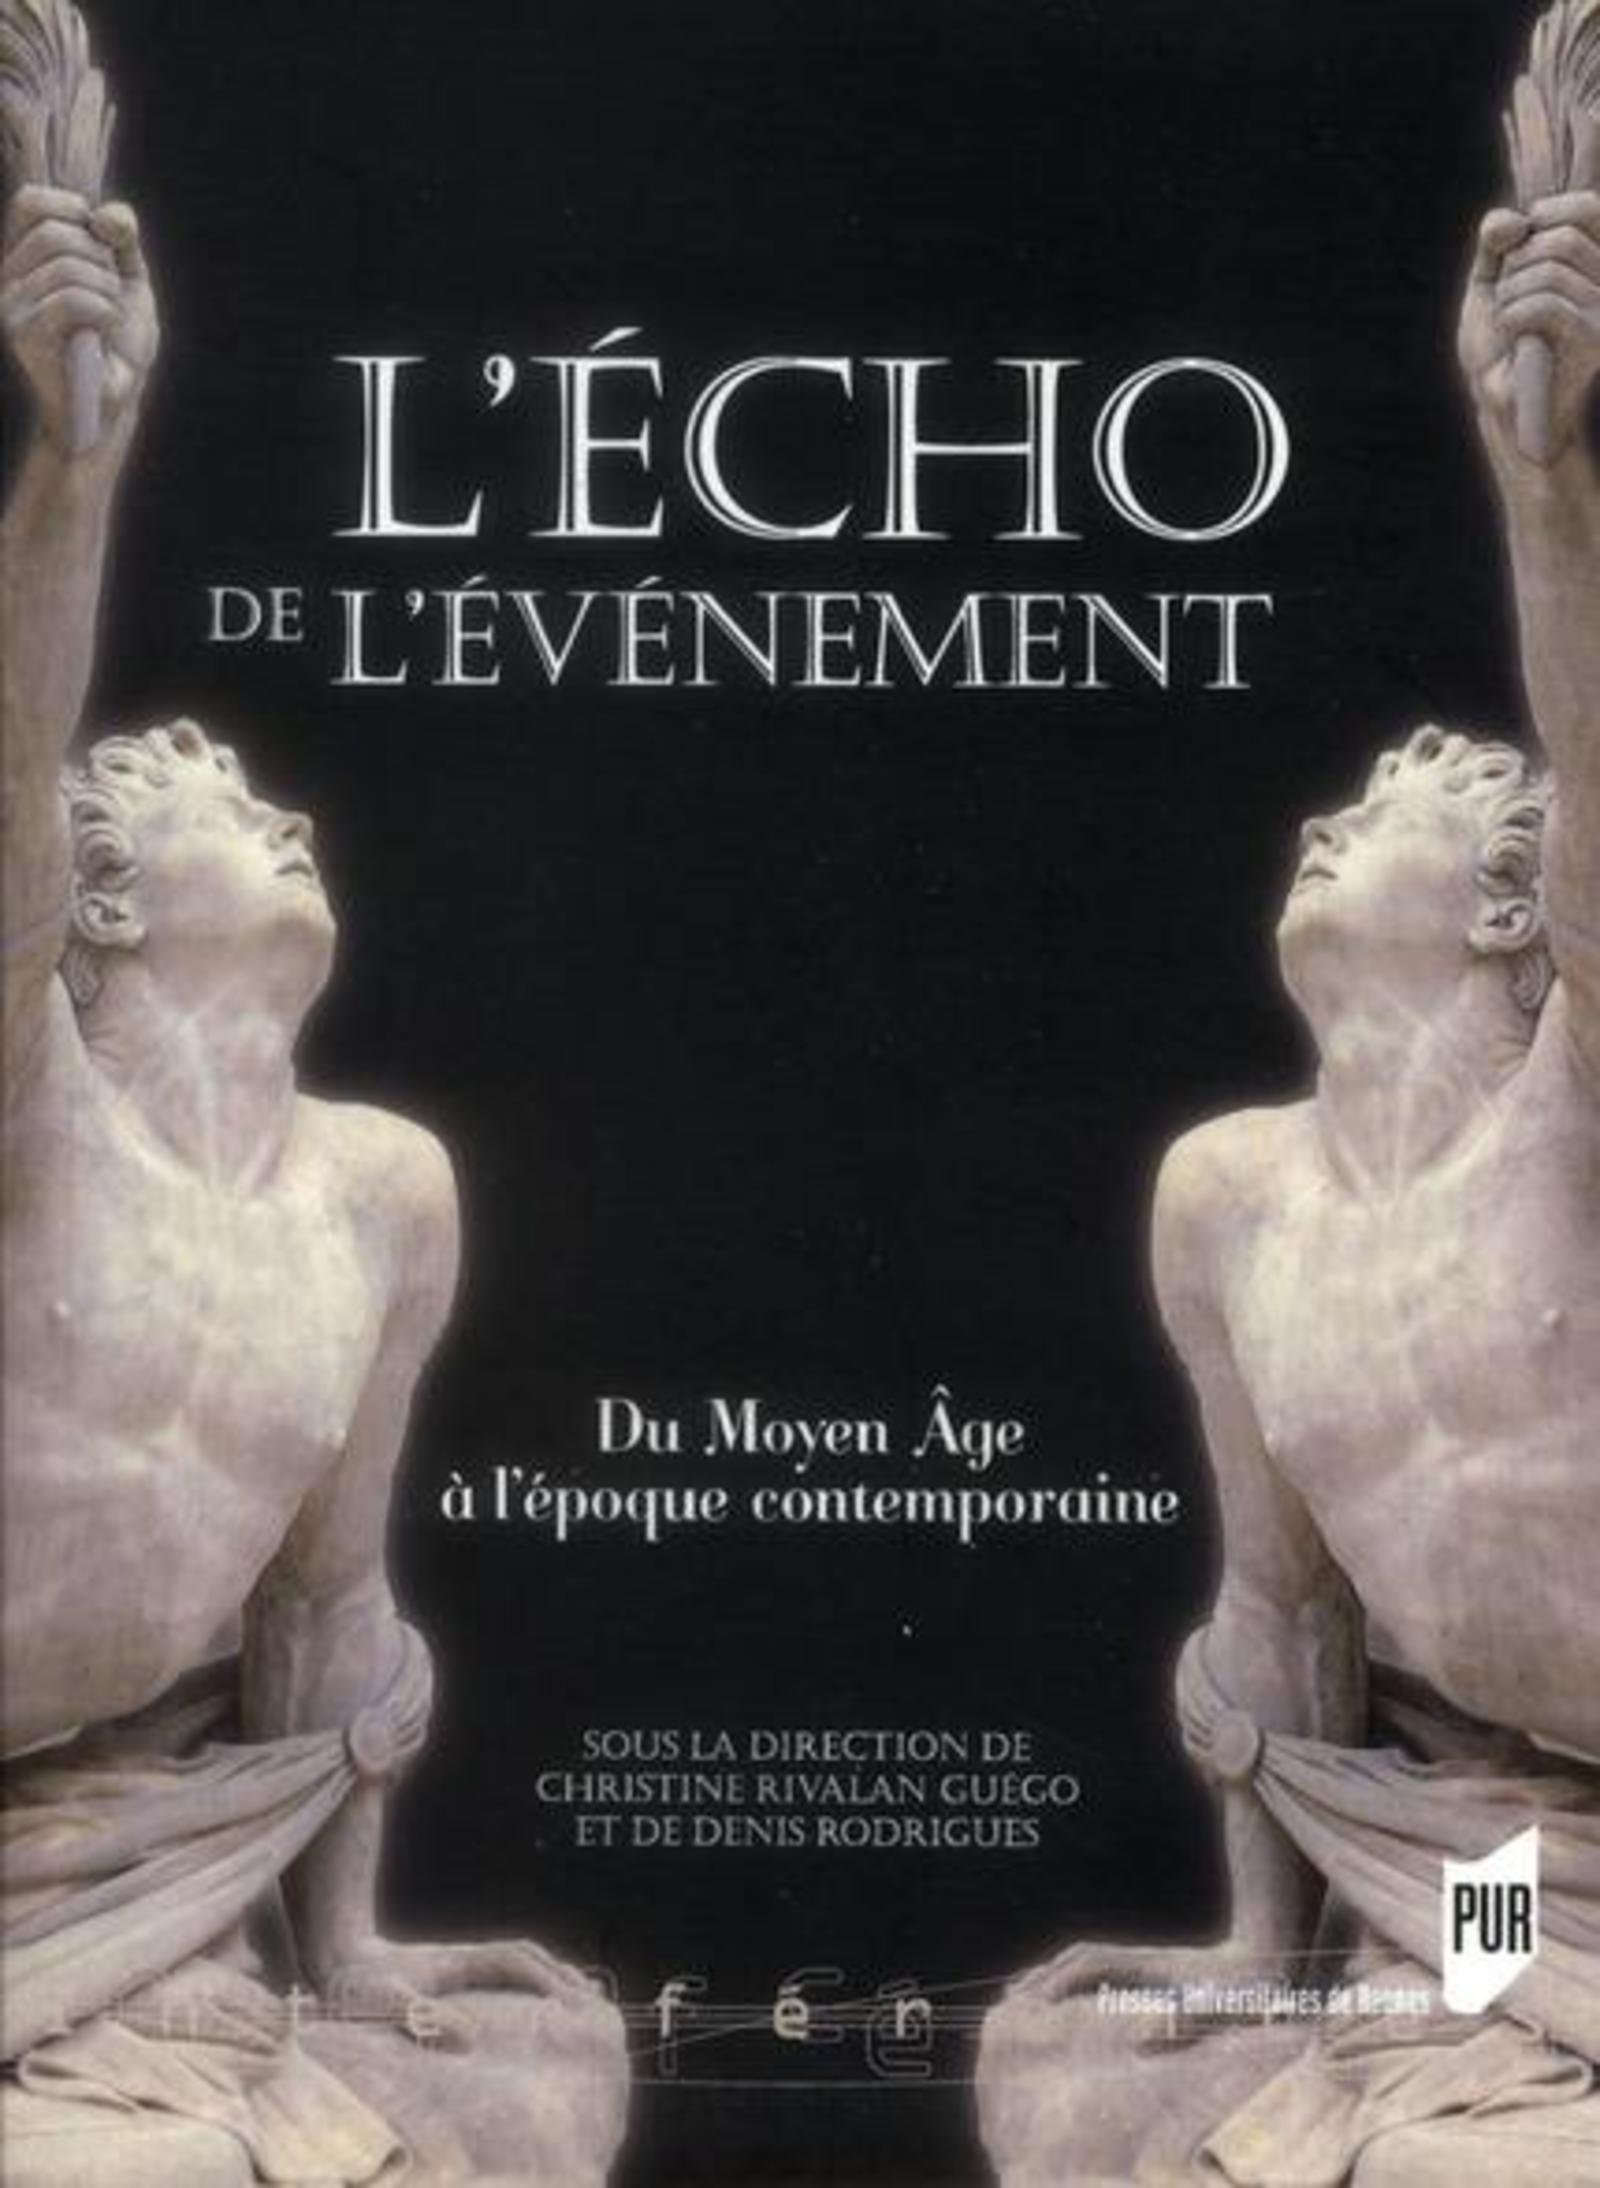 ECHO DE L EVENEMENT